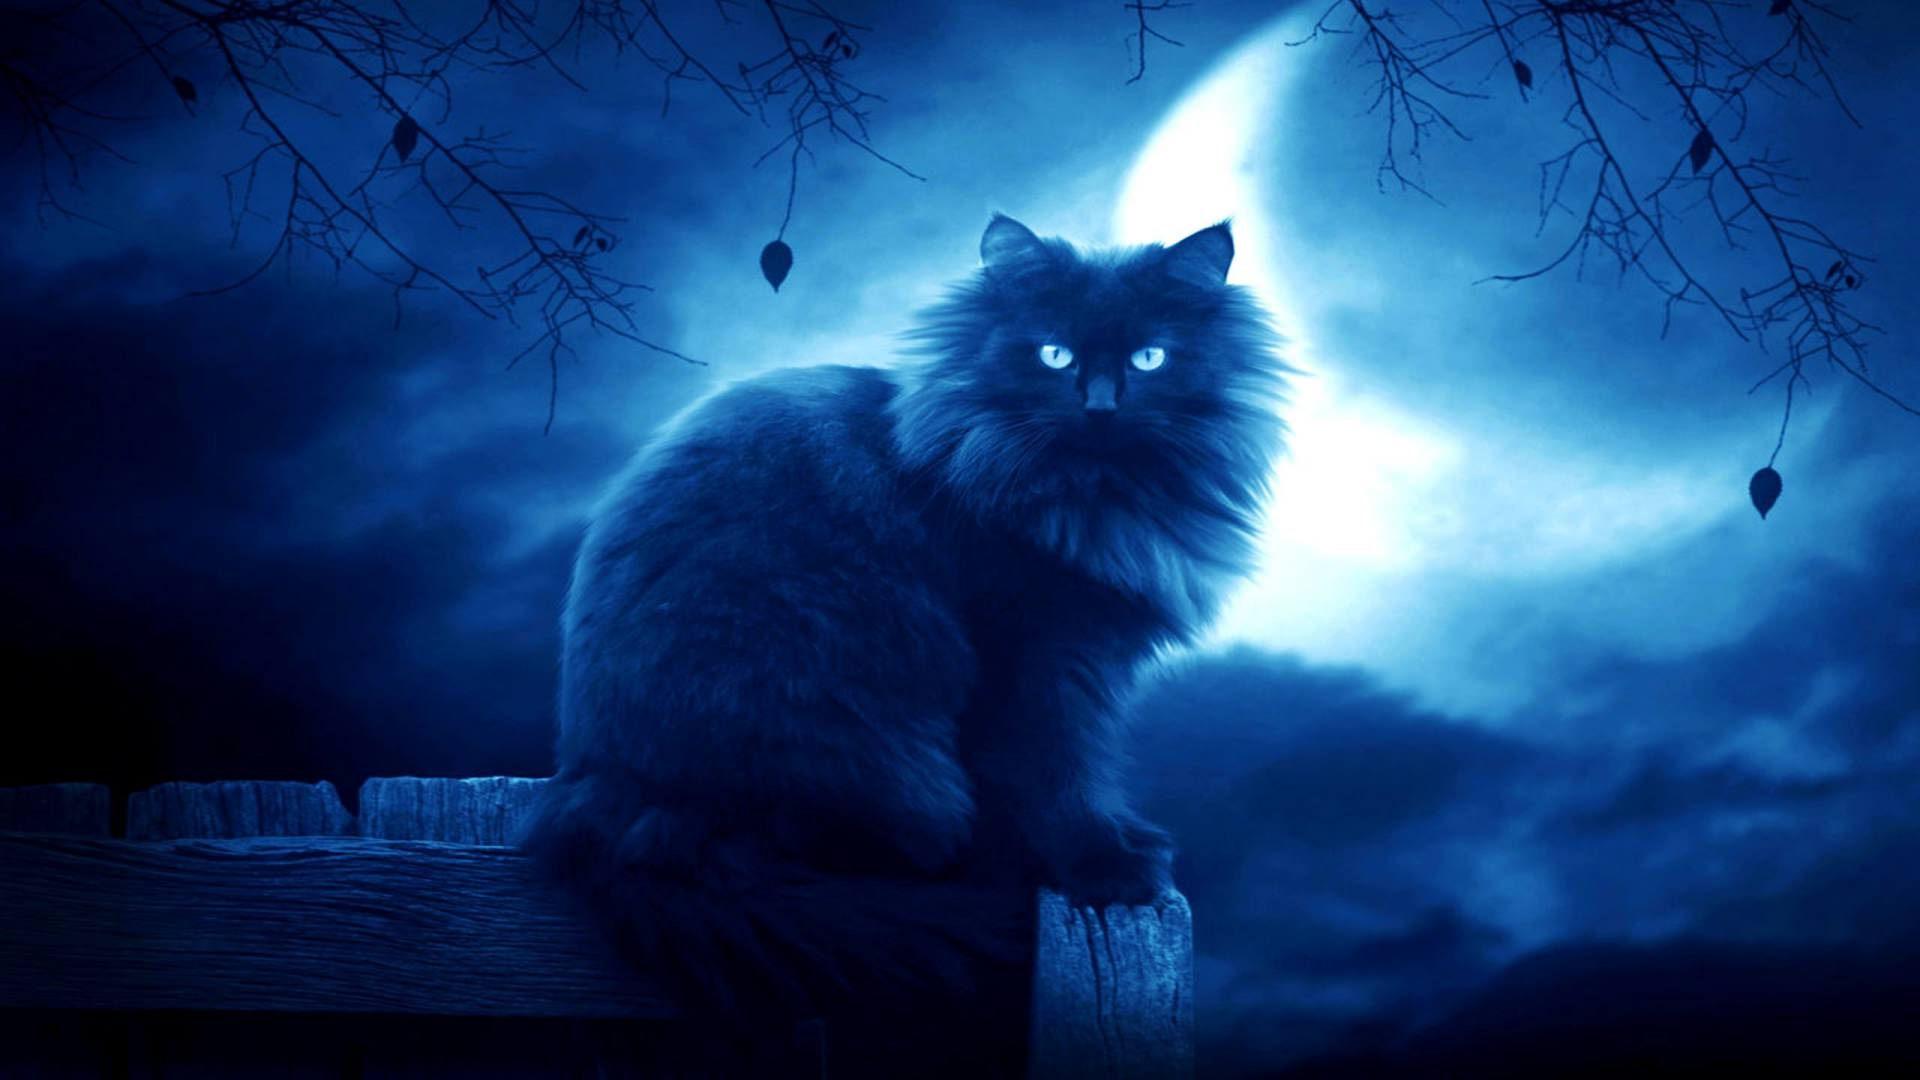 Elegant Look of Cat in Dark Moon Background